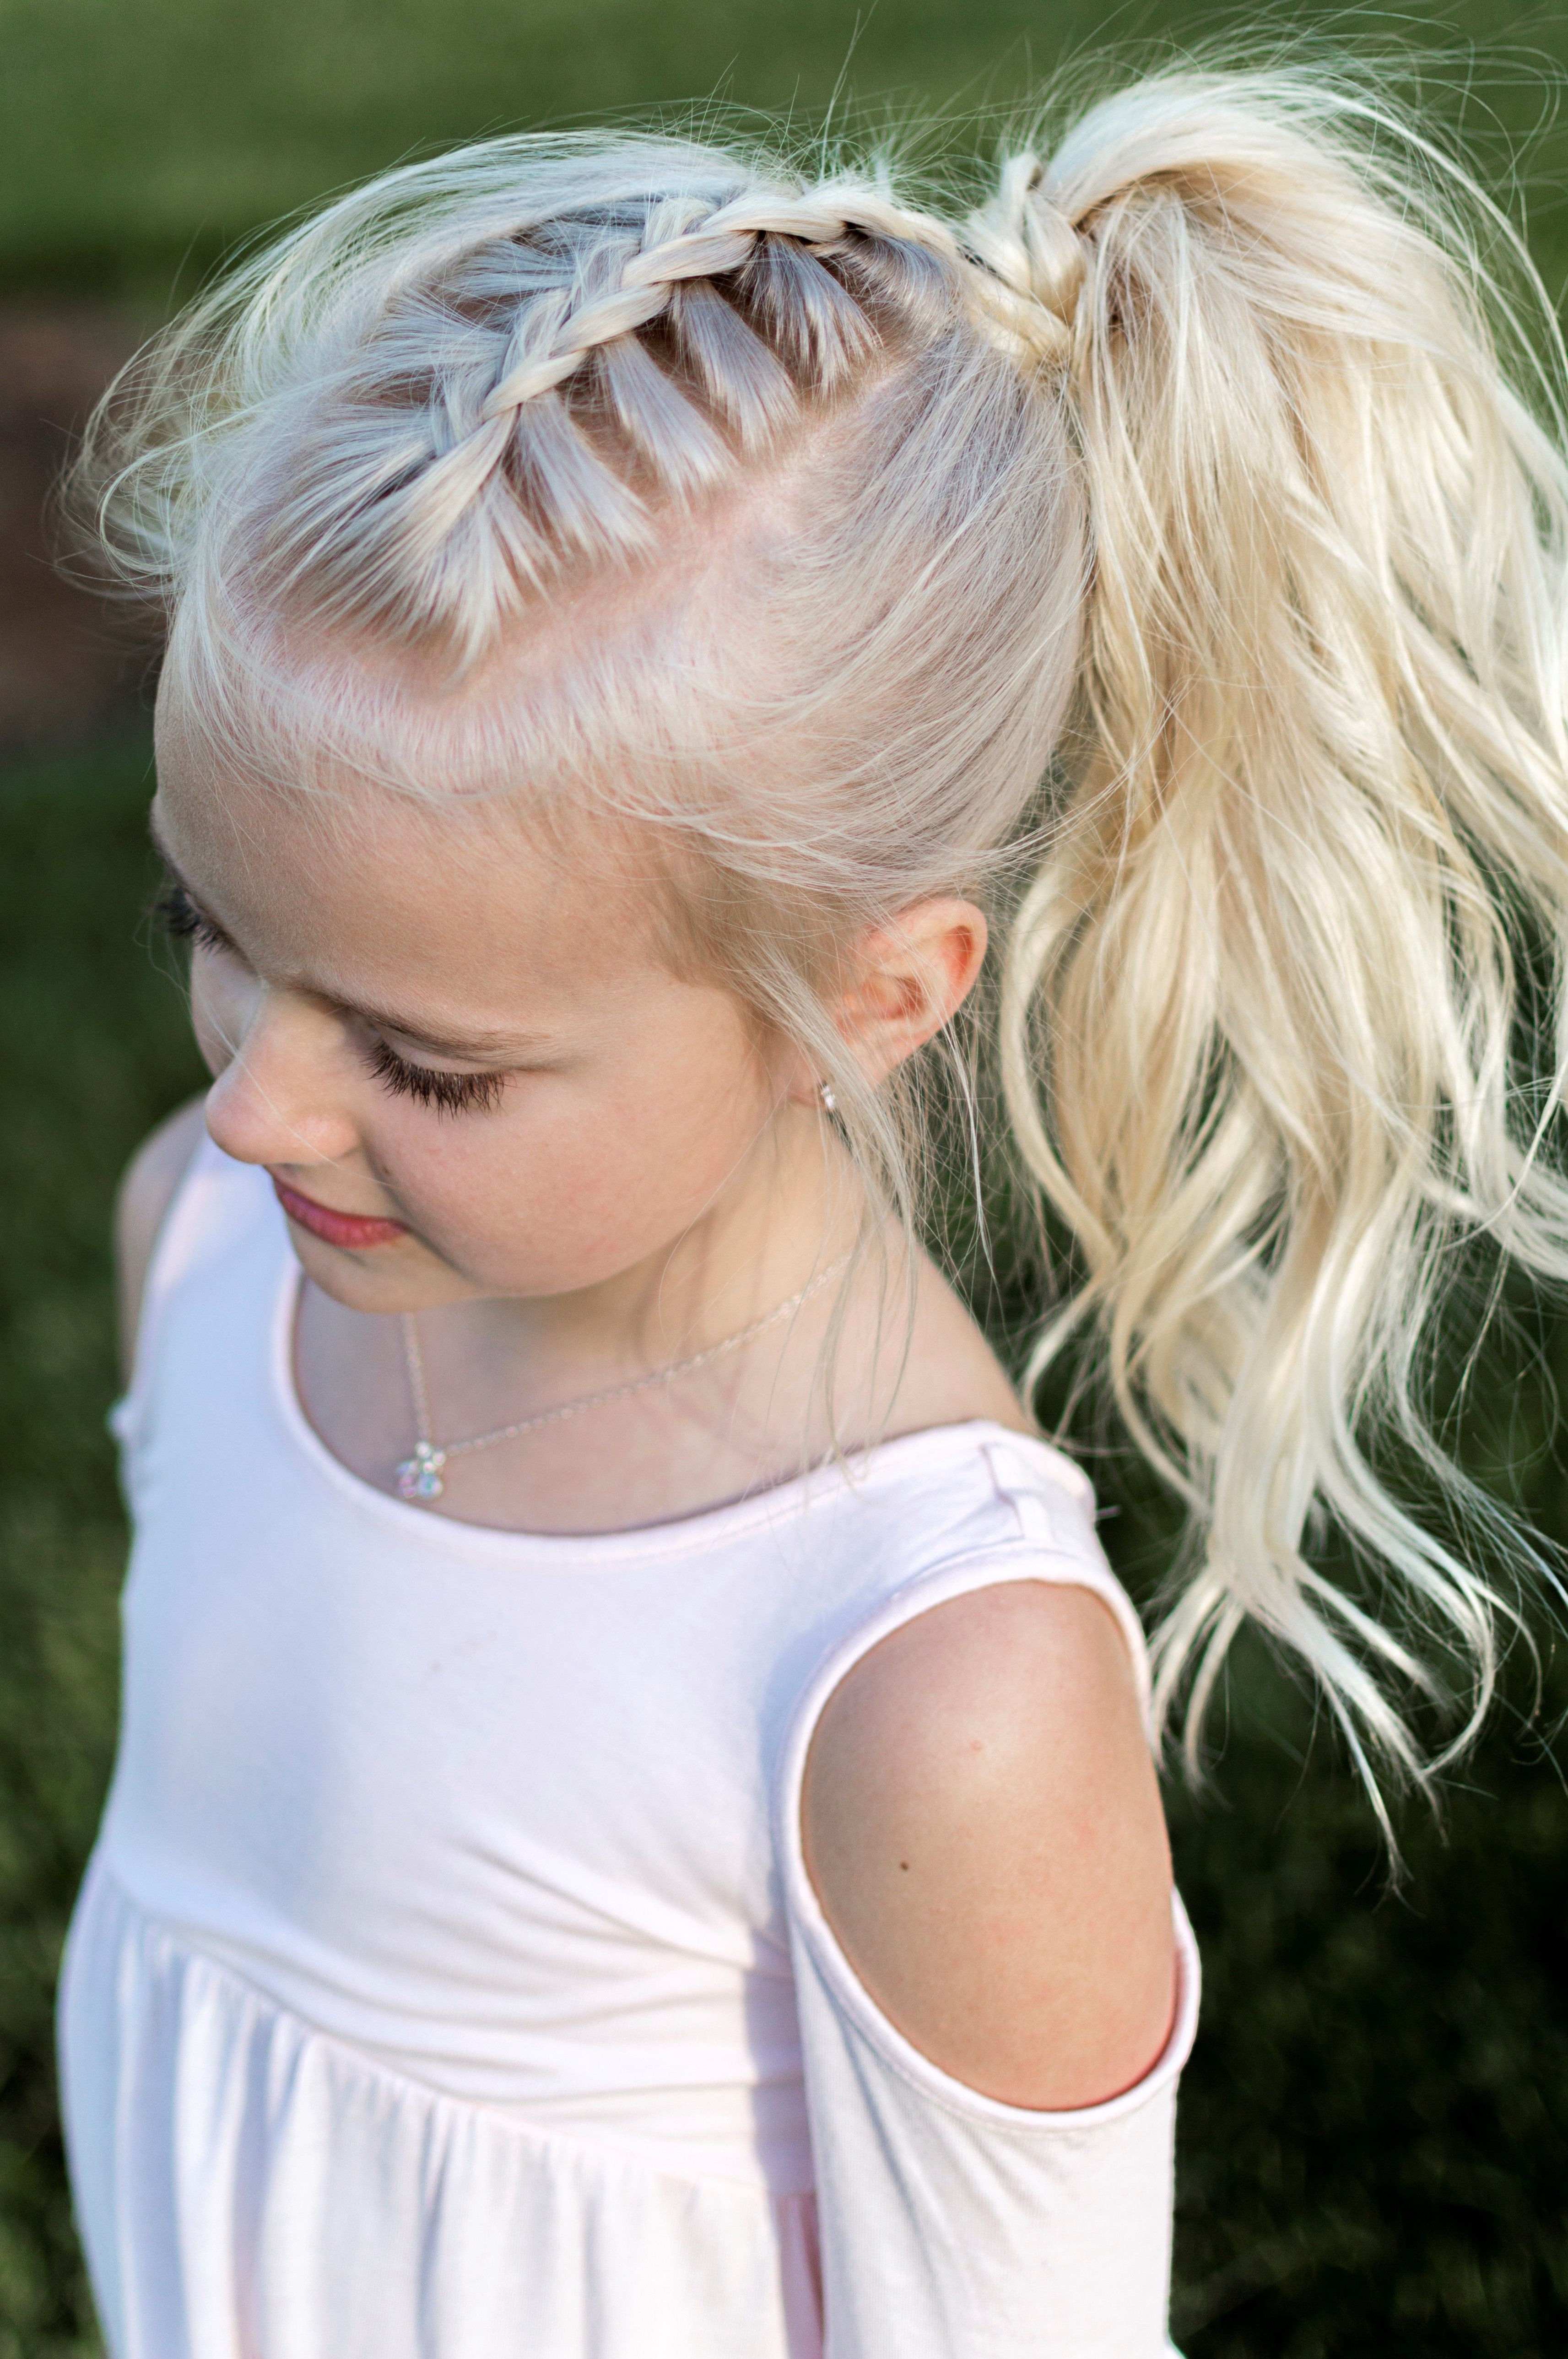 Little Girl Hairstyle French Braid Pony Tail Curls High Pony Regarding Fashionable High And Glossy Brown Blonde Pony Hairstyles (View 14 of 20)